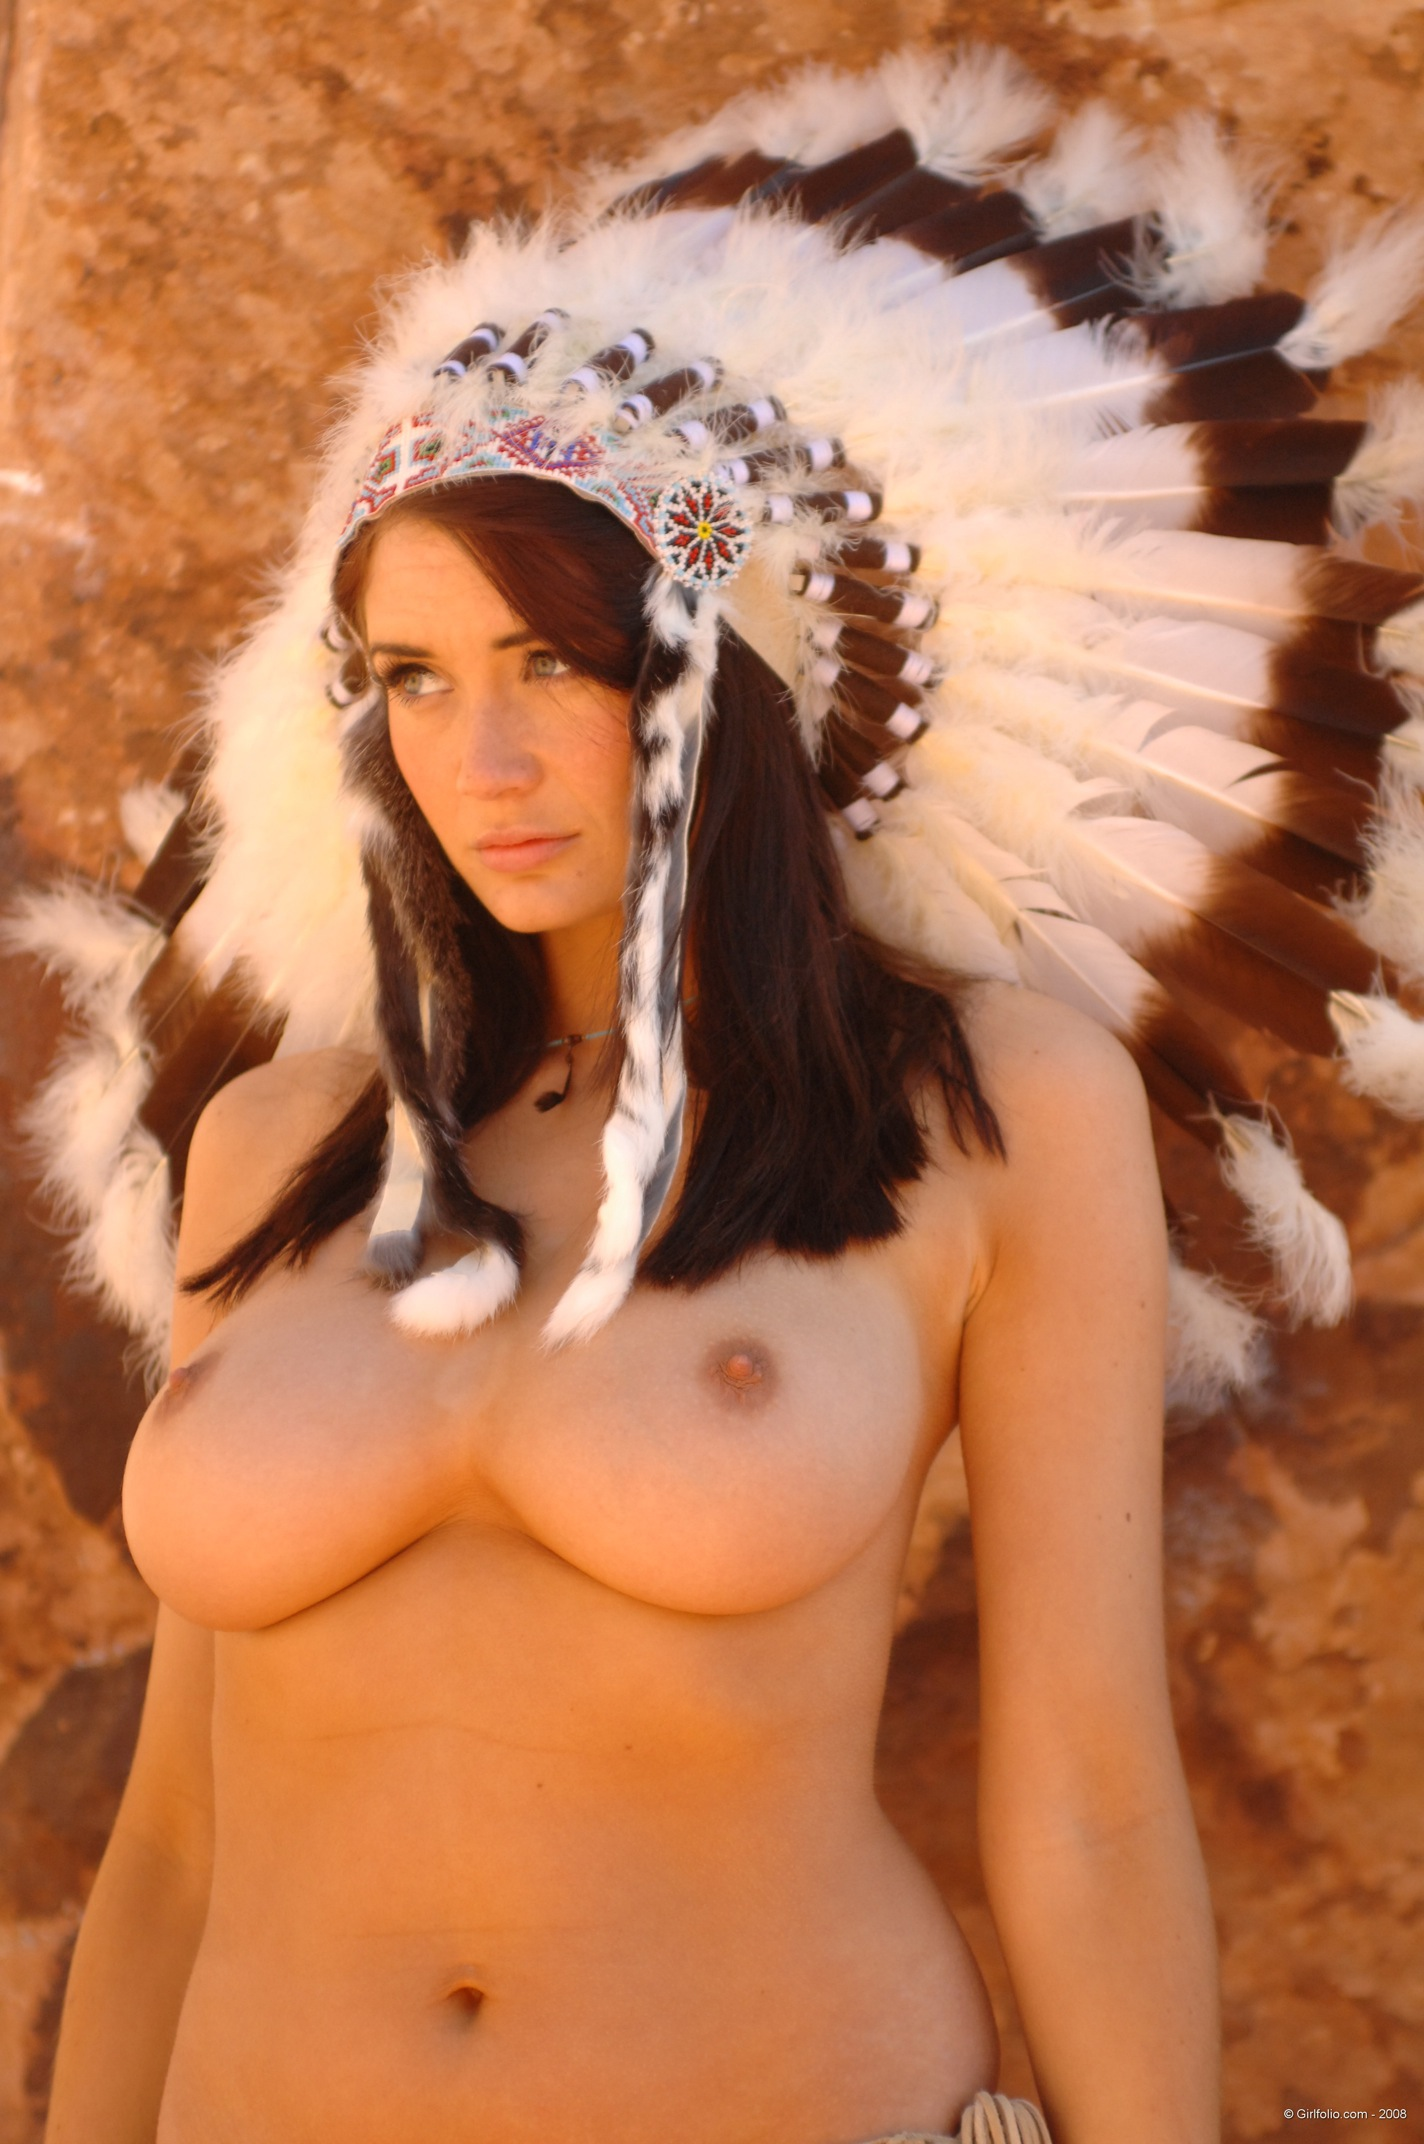 Girl nude cute native